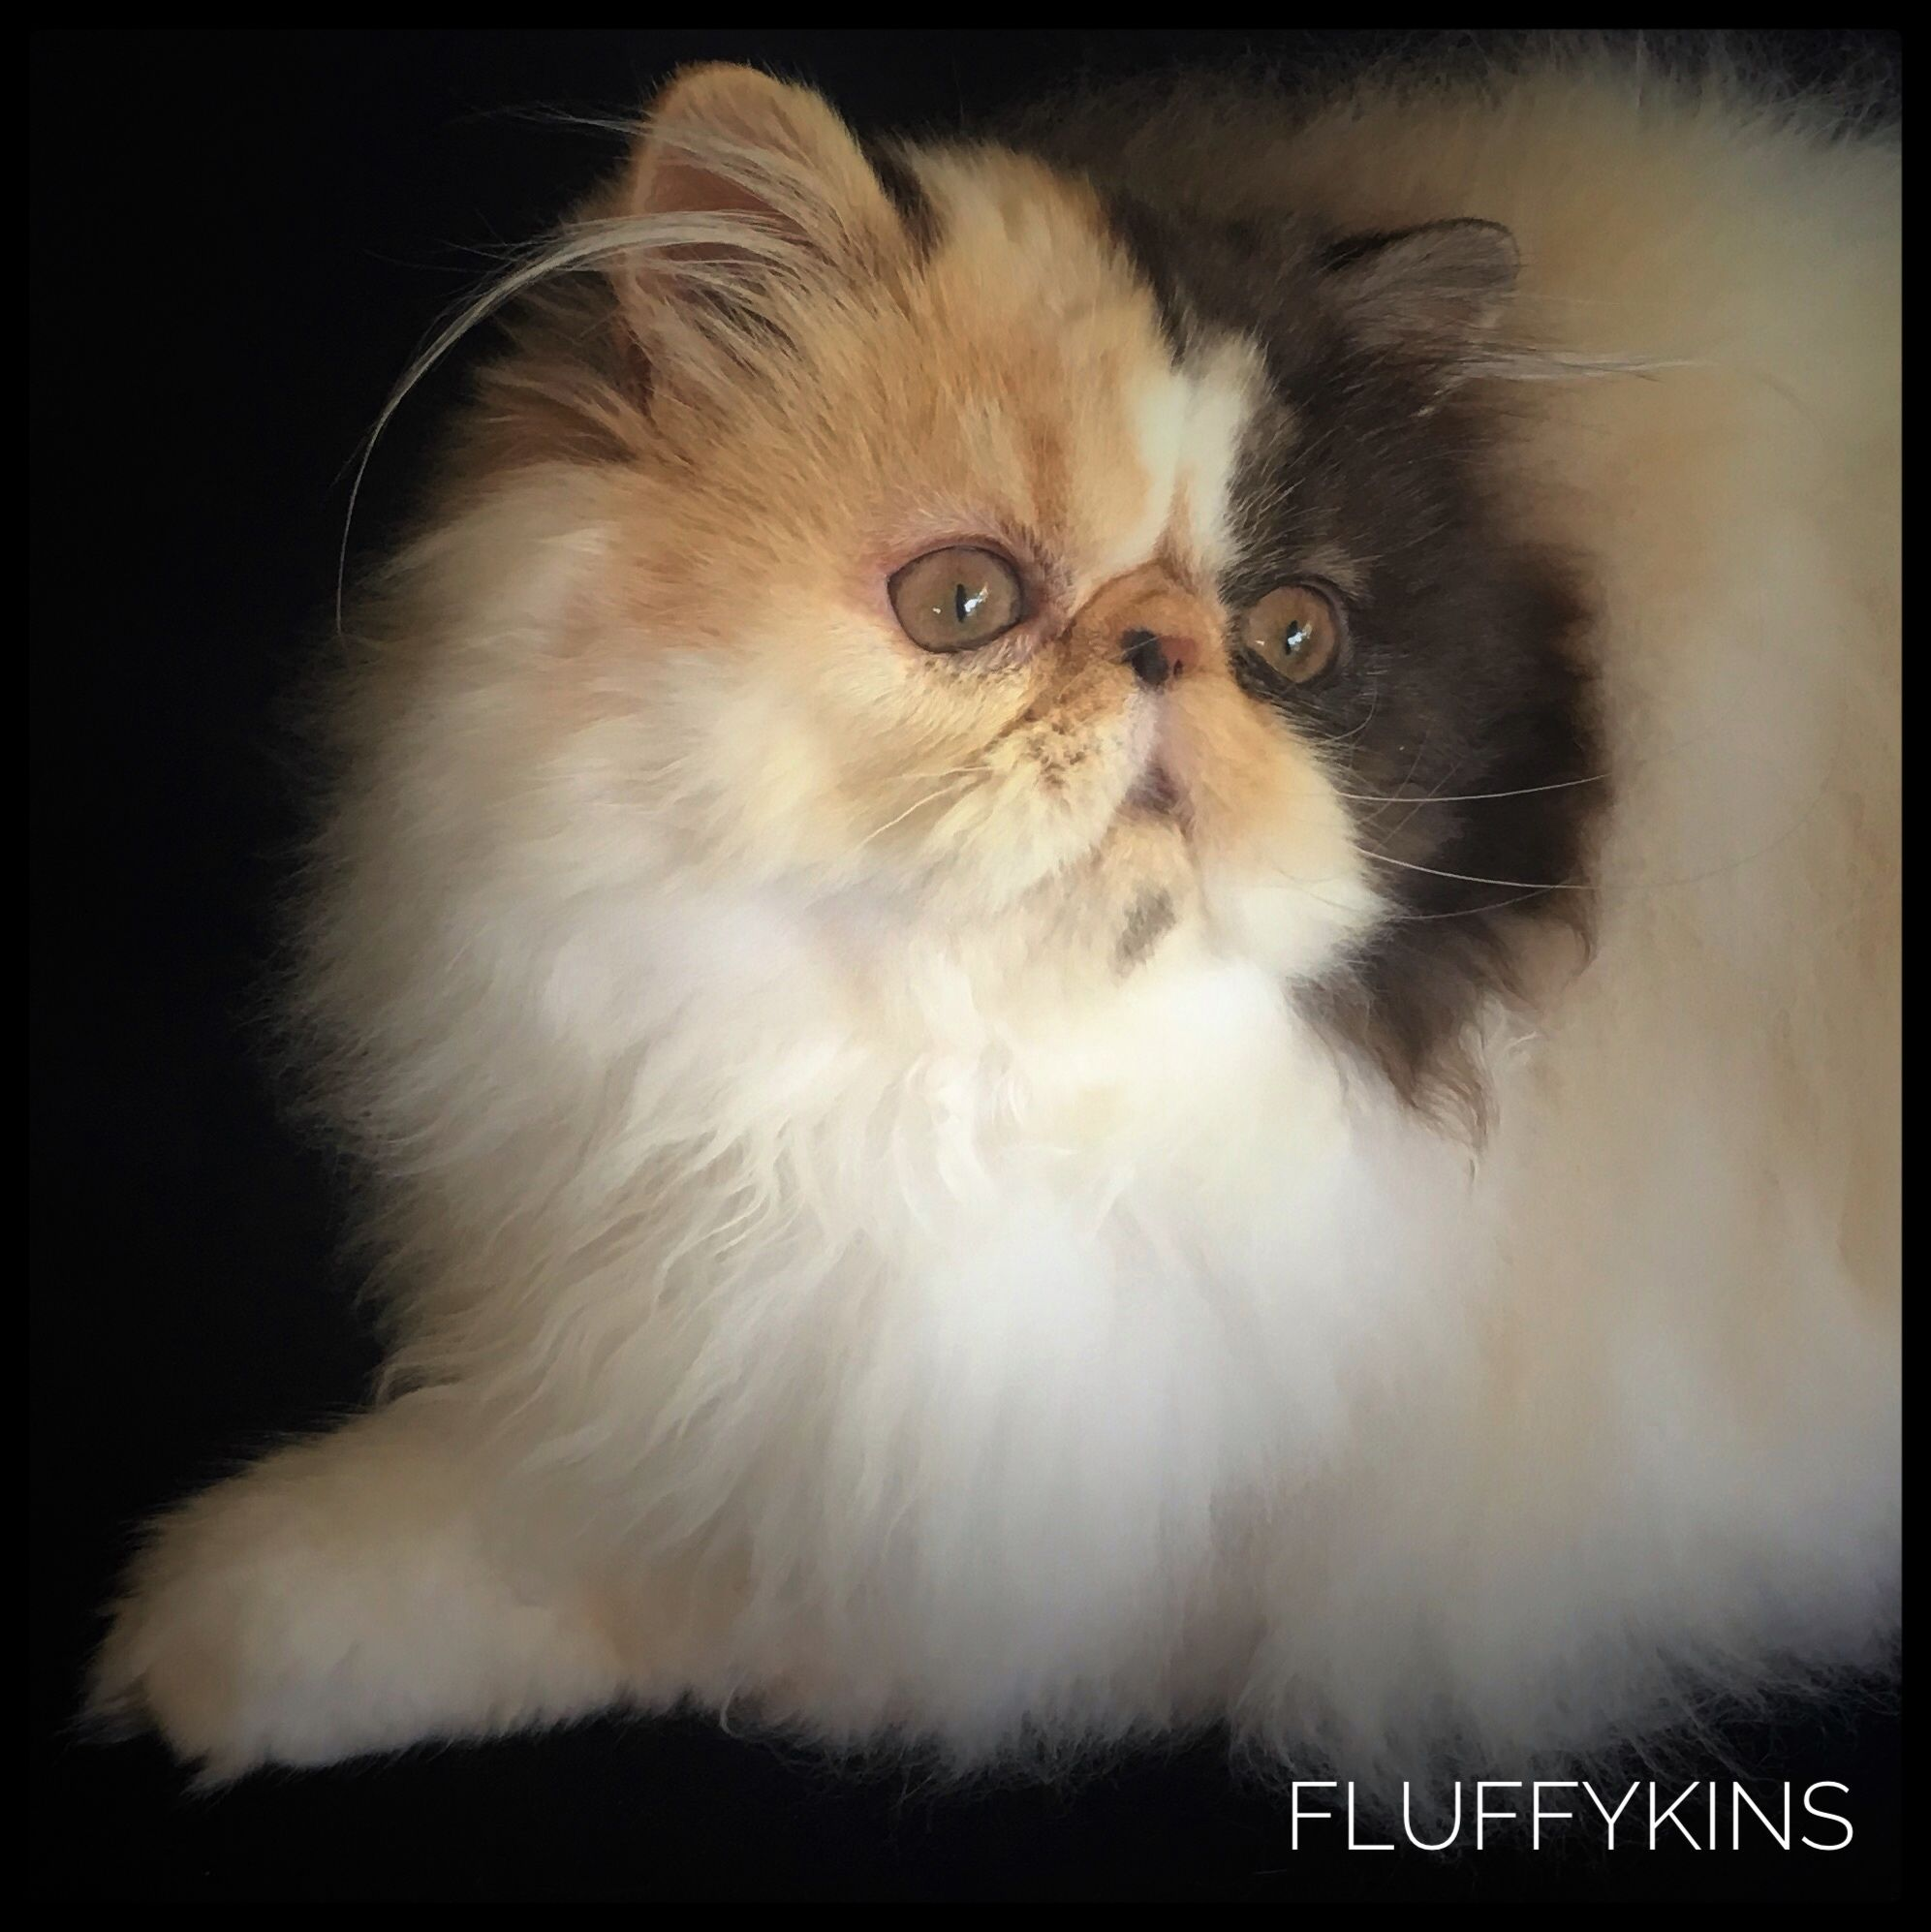 Fluffykins Twice As Nice A Rare Chocolate Tortie Smoke Bicolour Persian Or Known In The Usa As A Chocolate P Cute Cats And Kittens Persian Kittens Cute Cat Gif